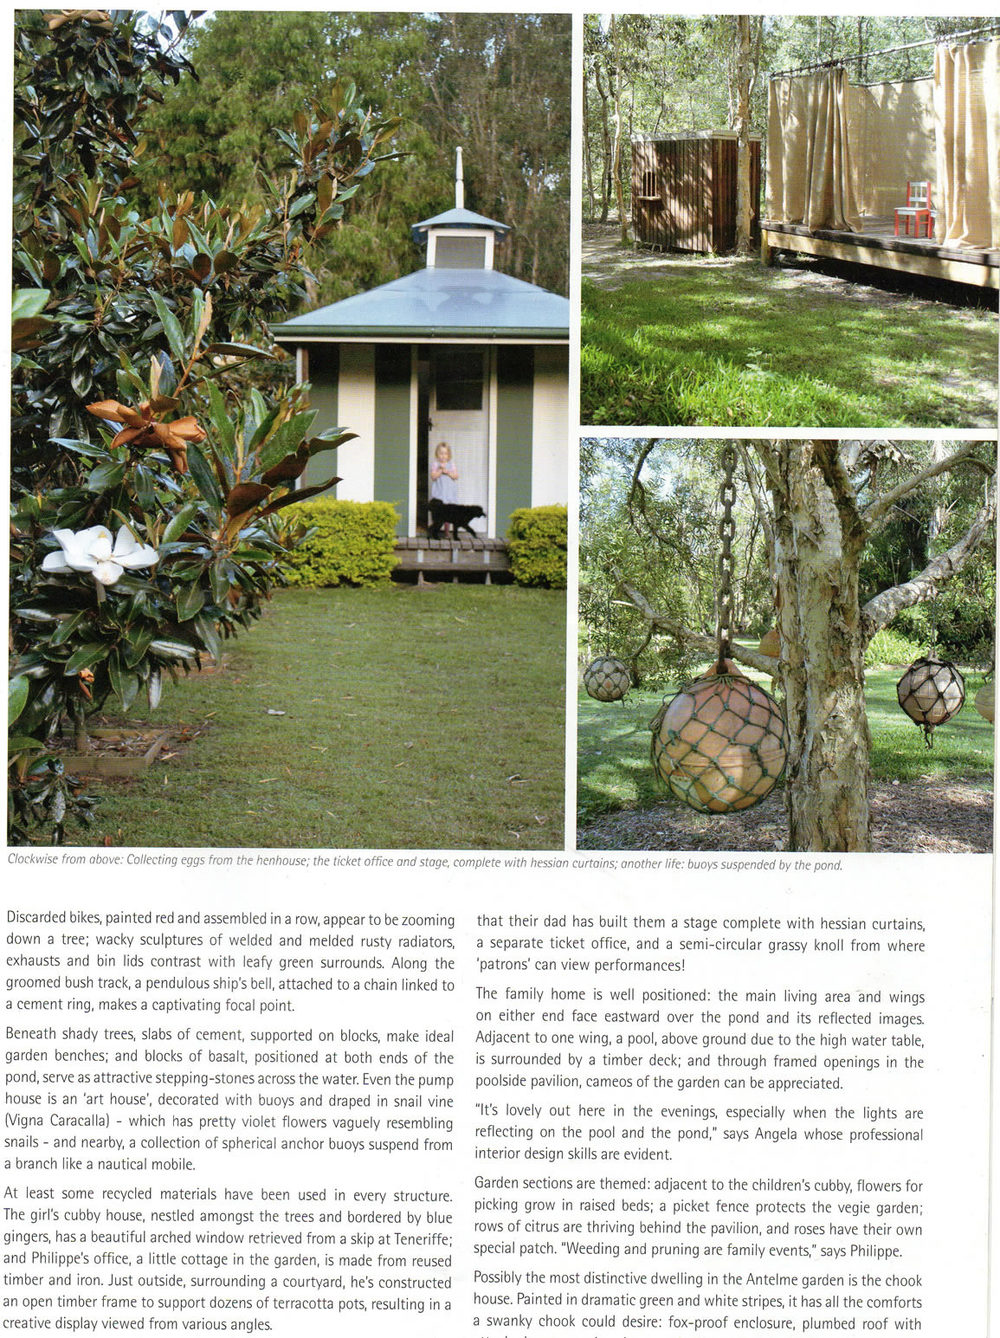 Qld Homes Page 3